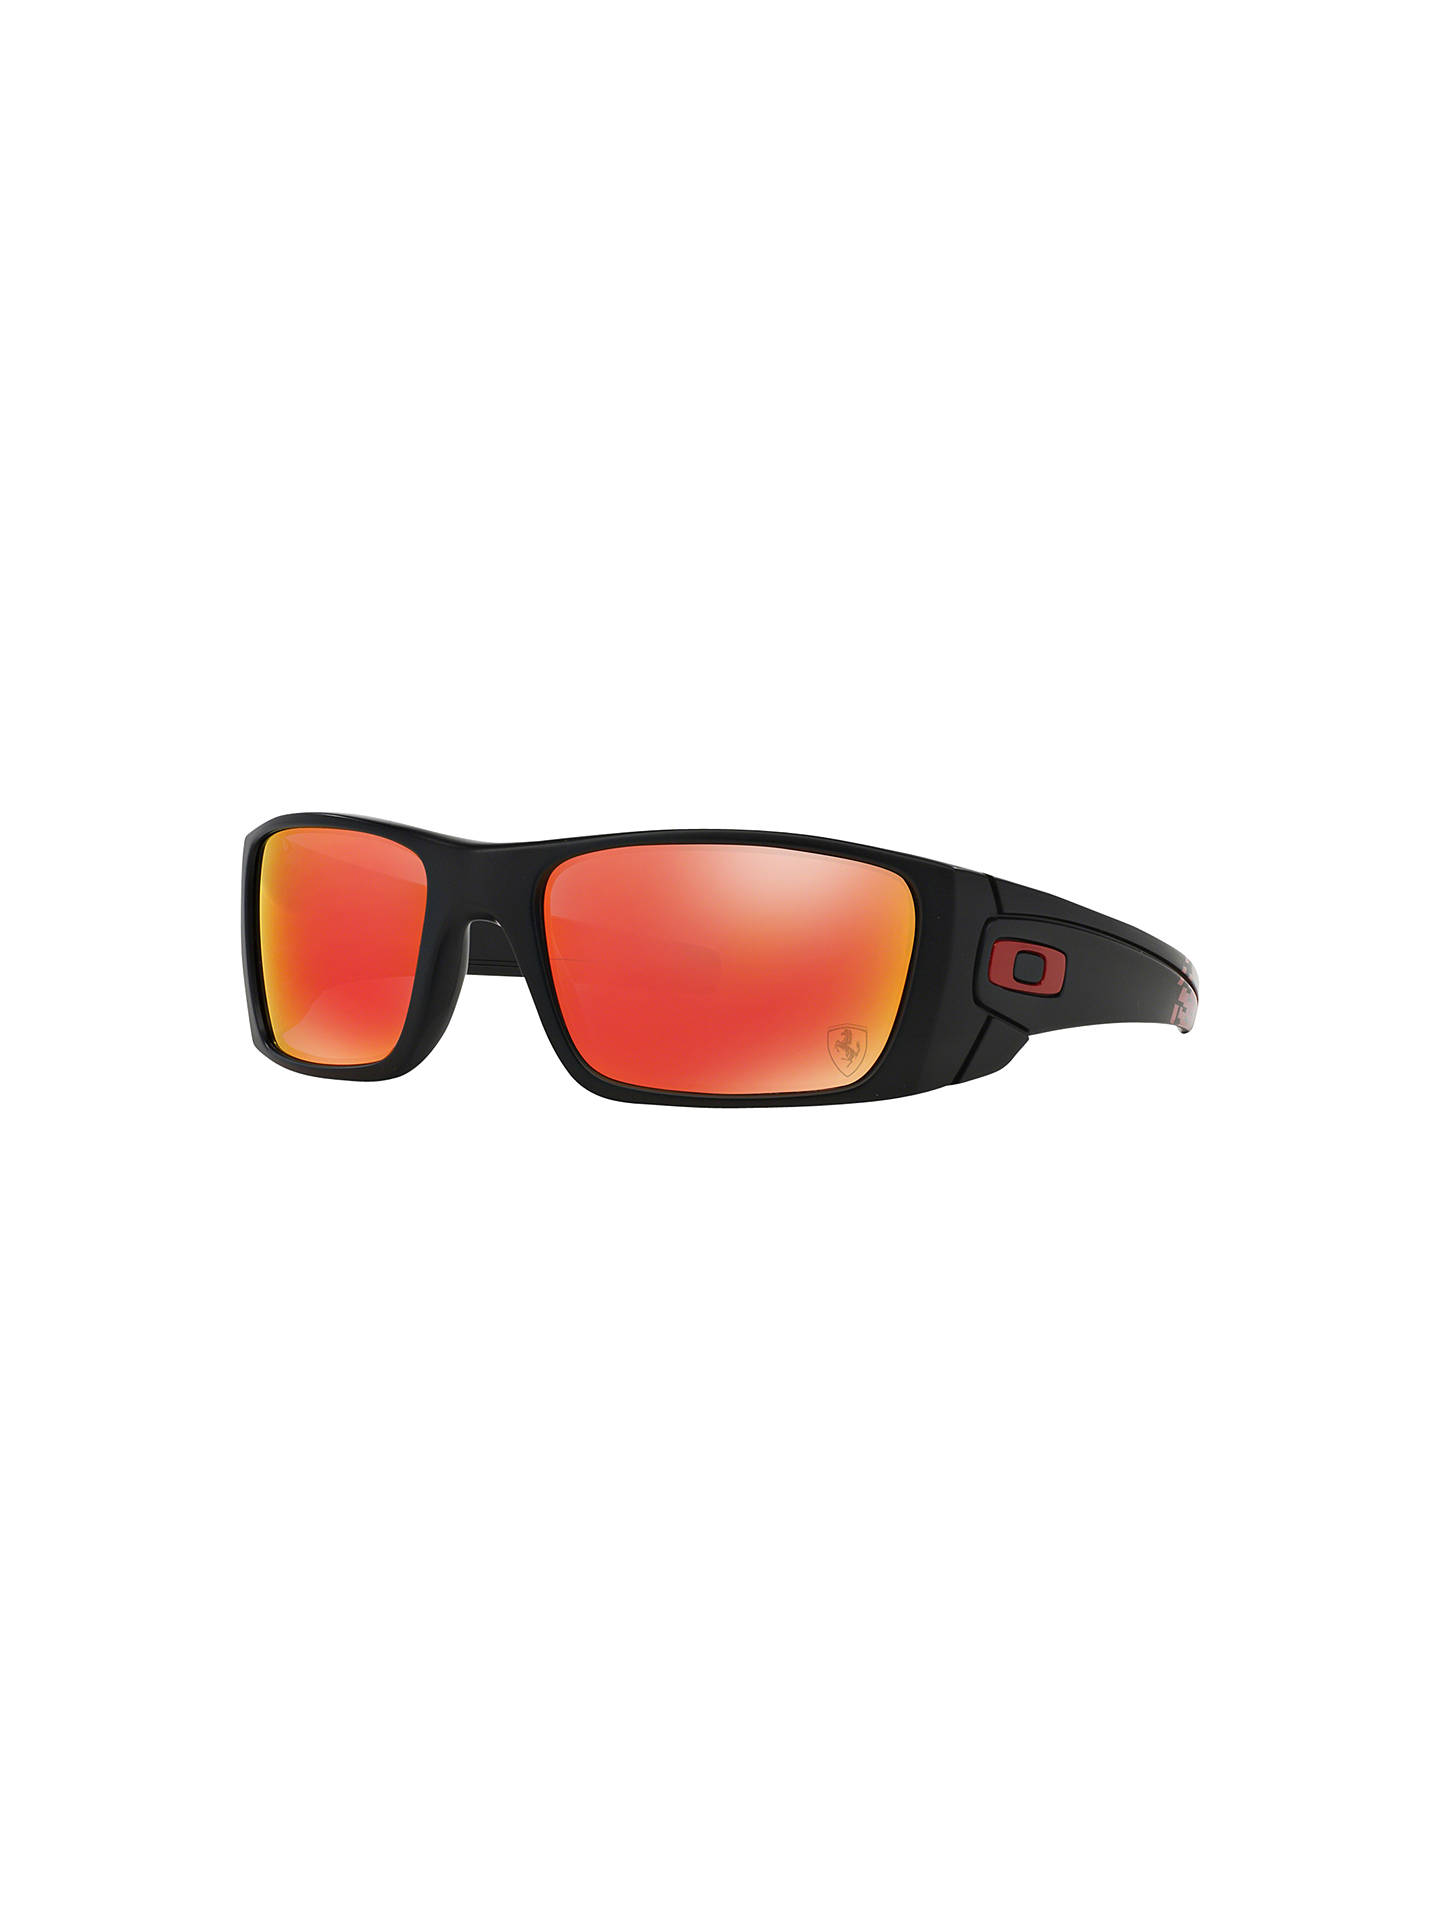 e52d9e6b94 Oakley OO9096 Fuel Cell Scuderia Ferrari Collection Wrap Sunglasses ...